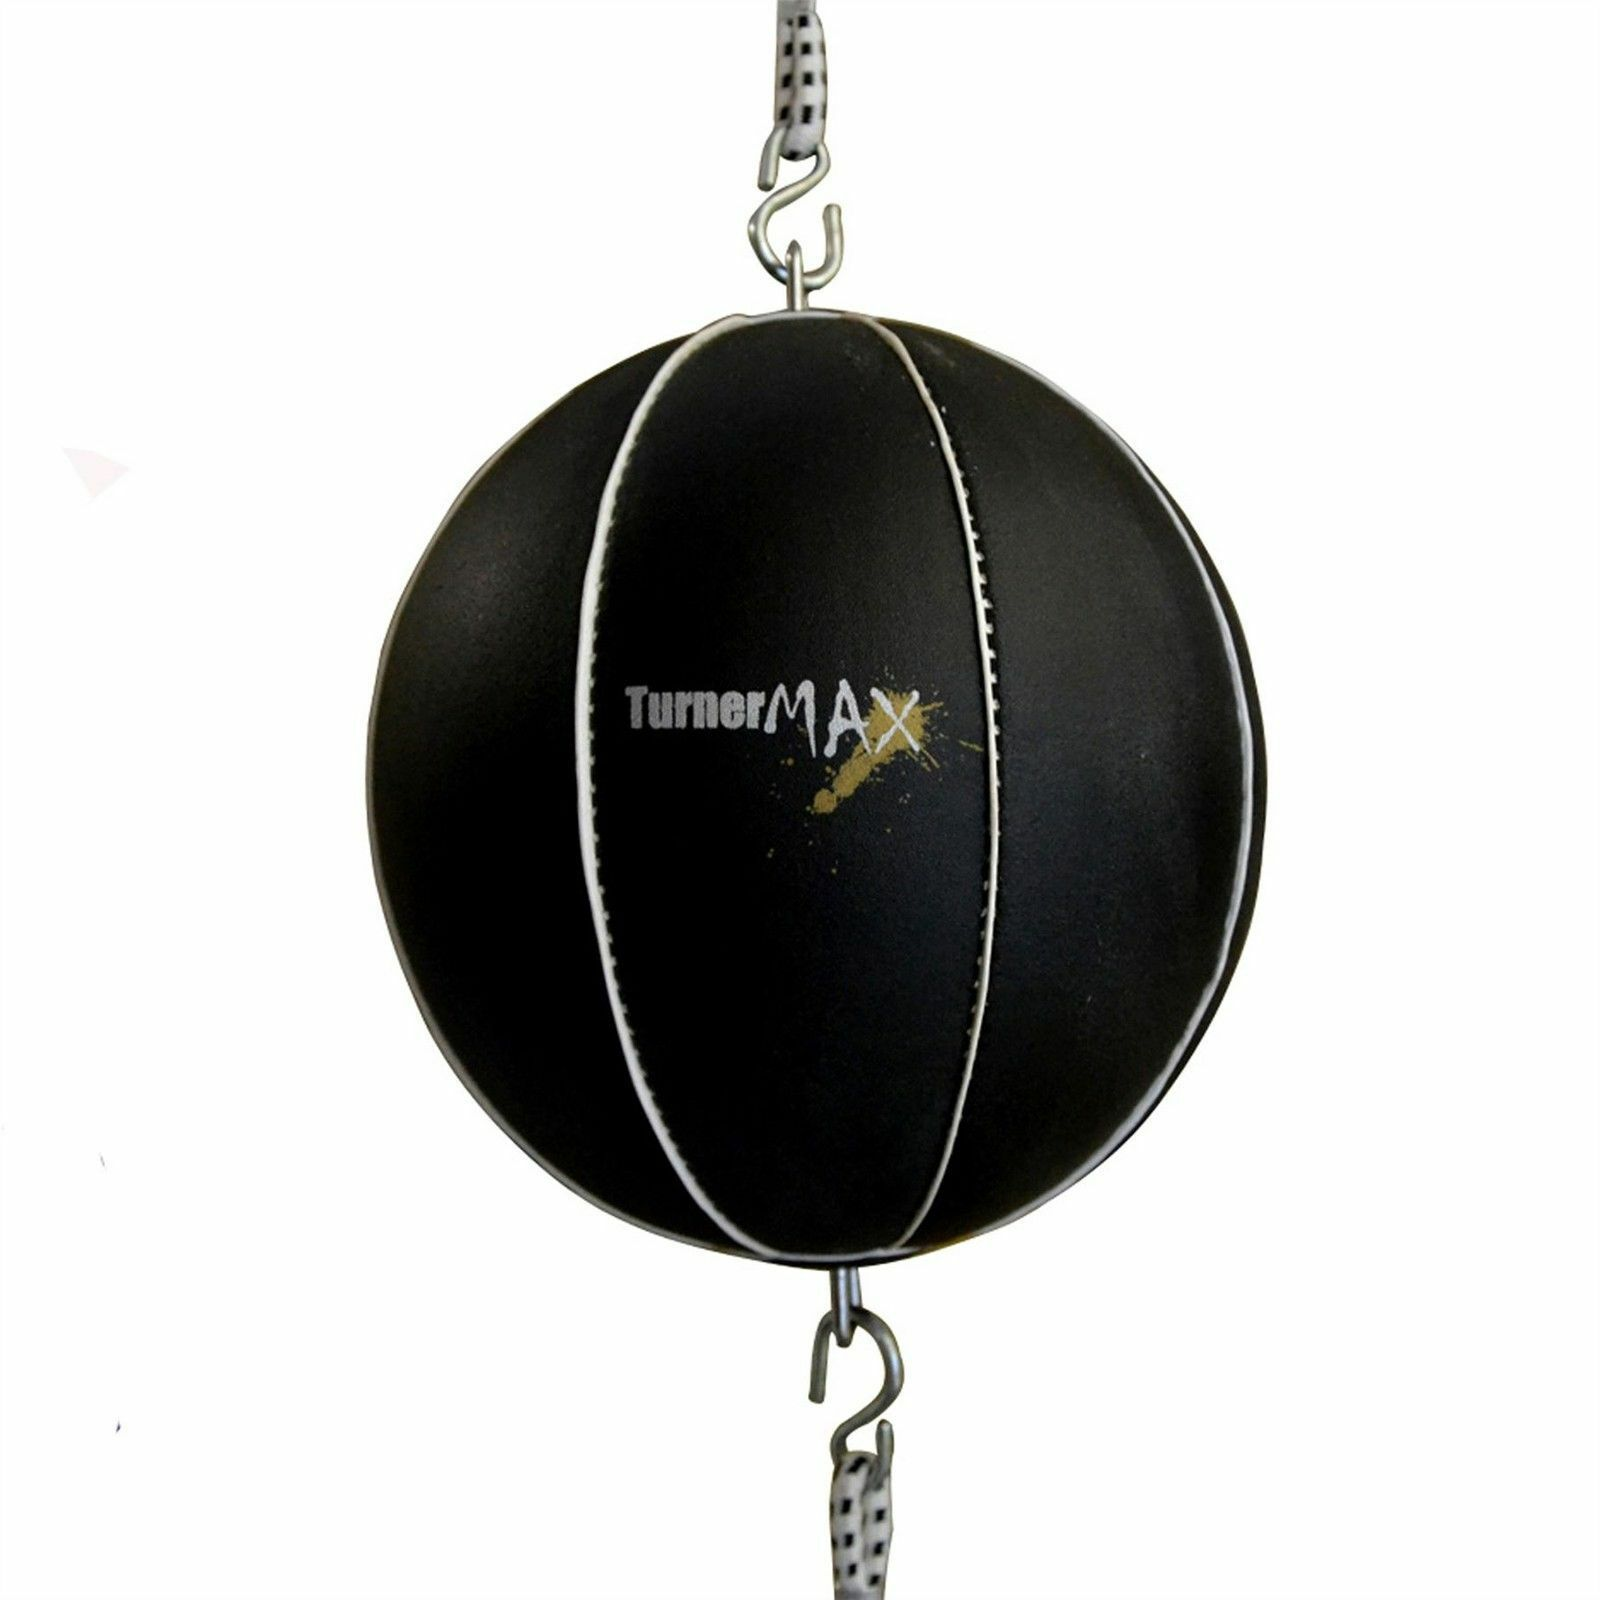 TurnerMAX Leather Double End Speed Ball Boxing Bag Punching Training MMA